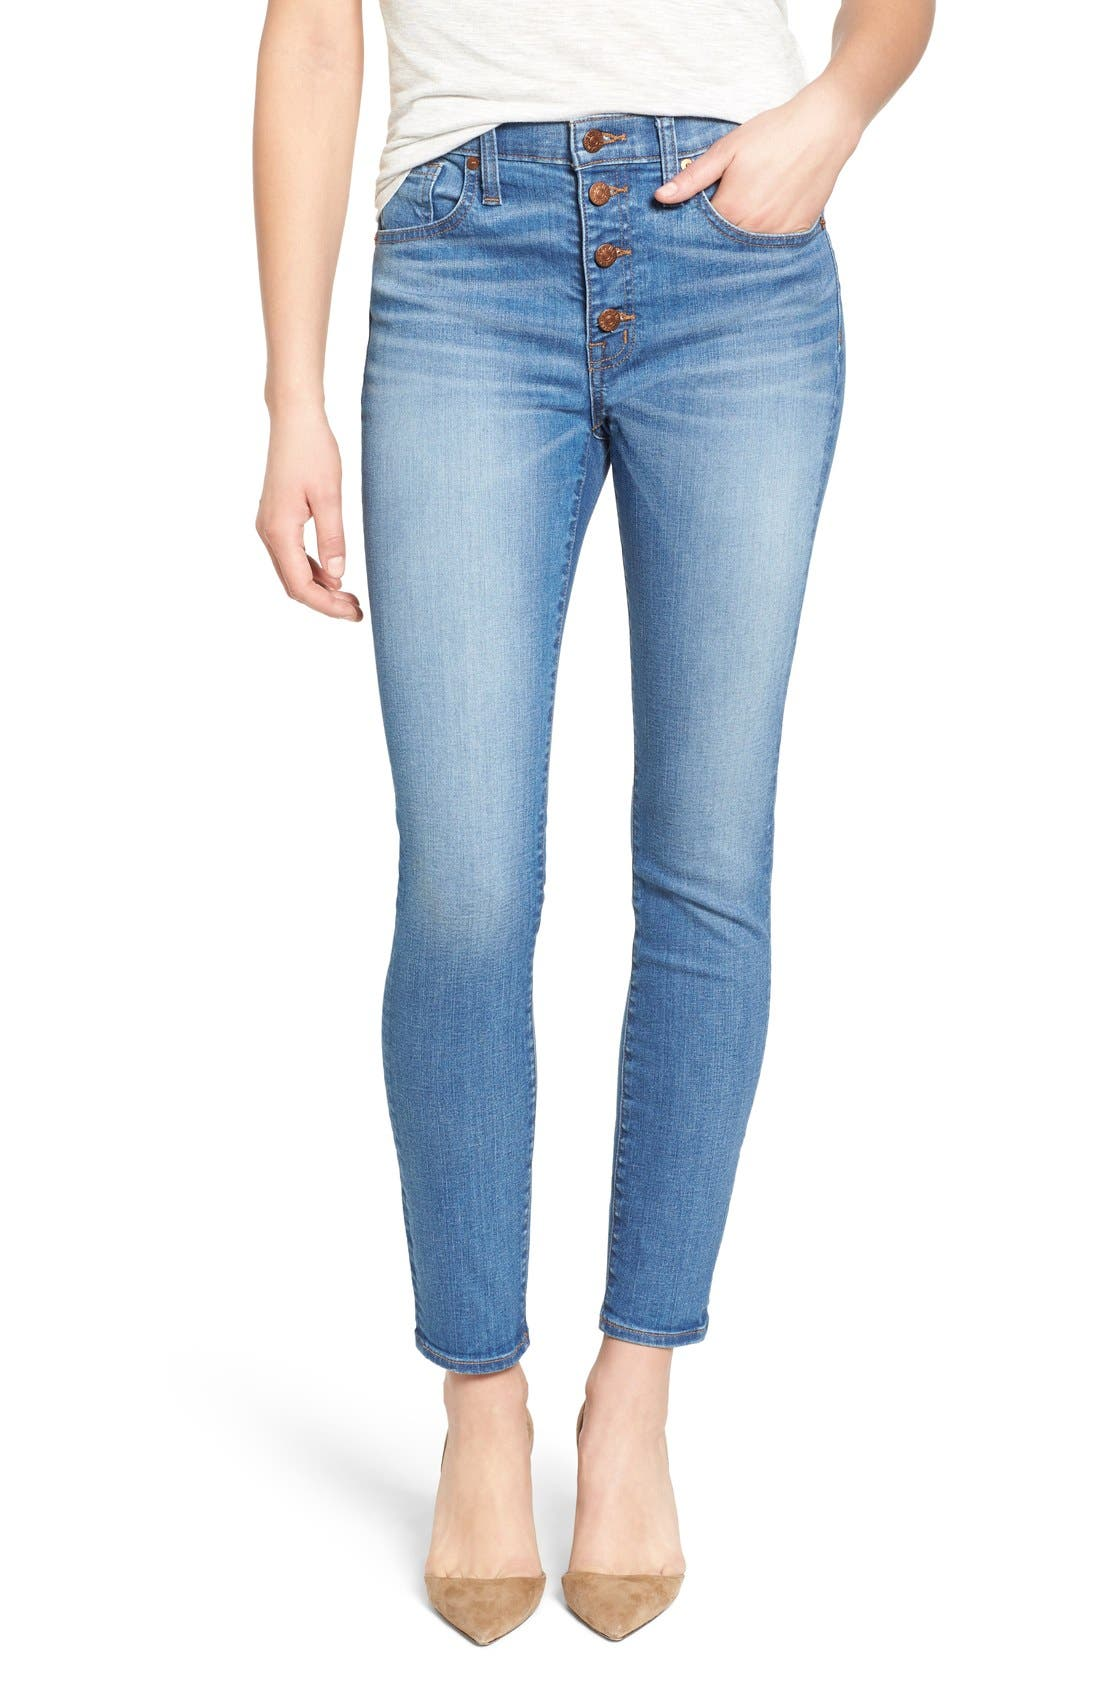 Alternate Image 1 Selected - Madewell 'High Riser - Button Through' Crop Skinny Skinny Jeans (Kearney Wash)